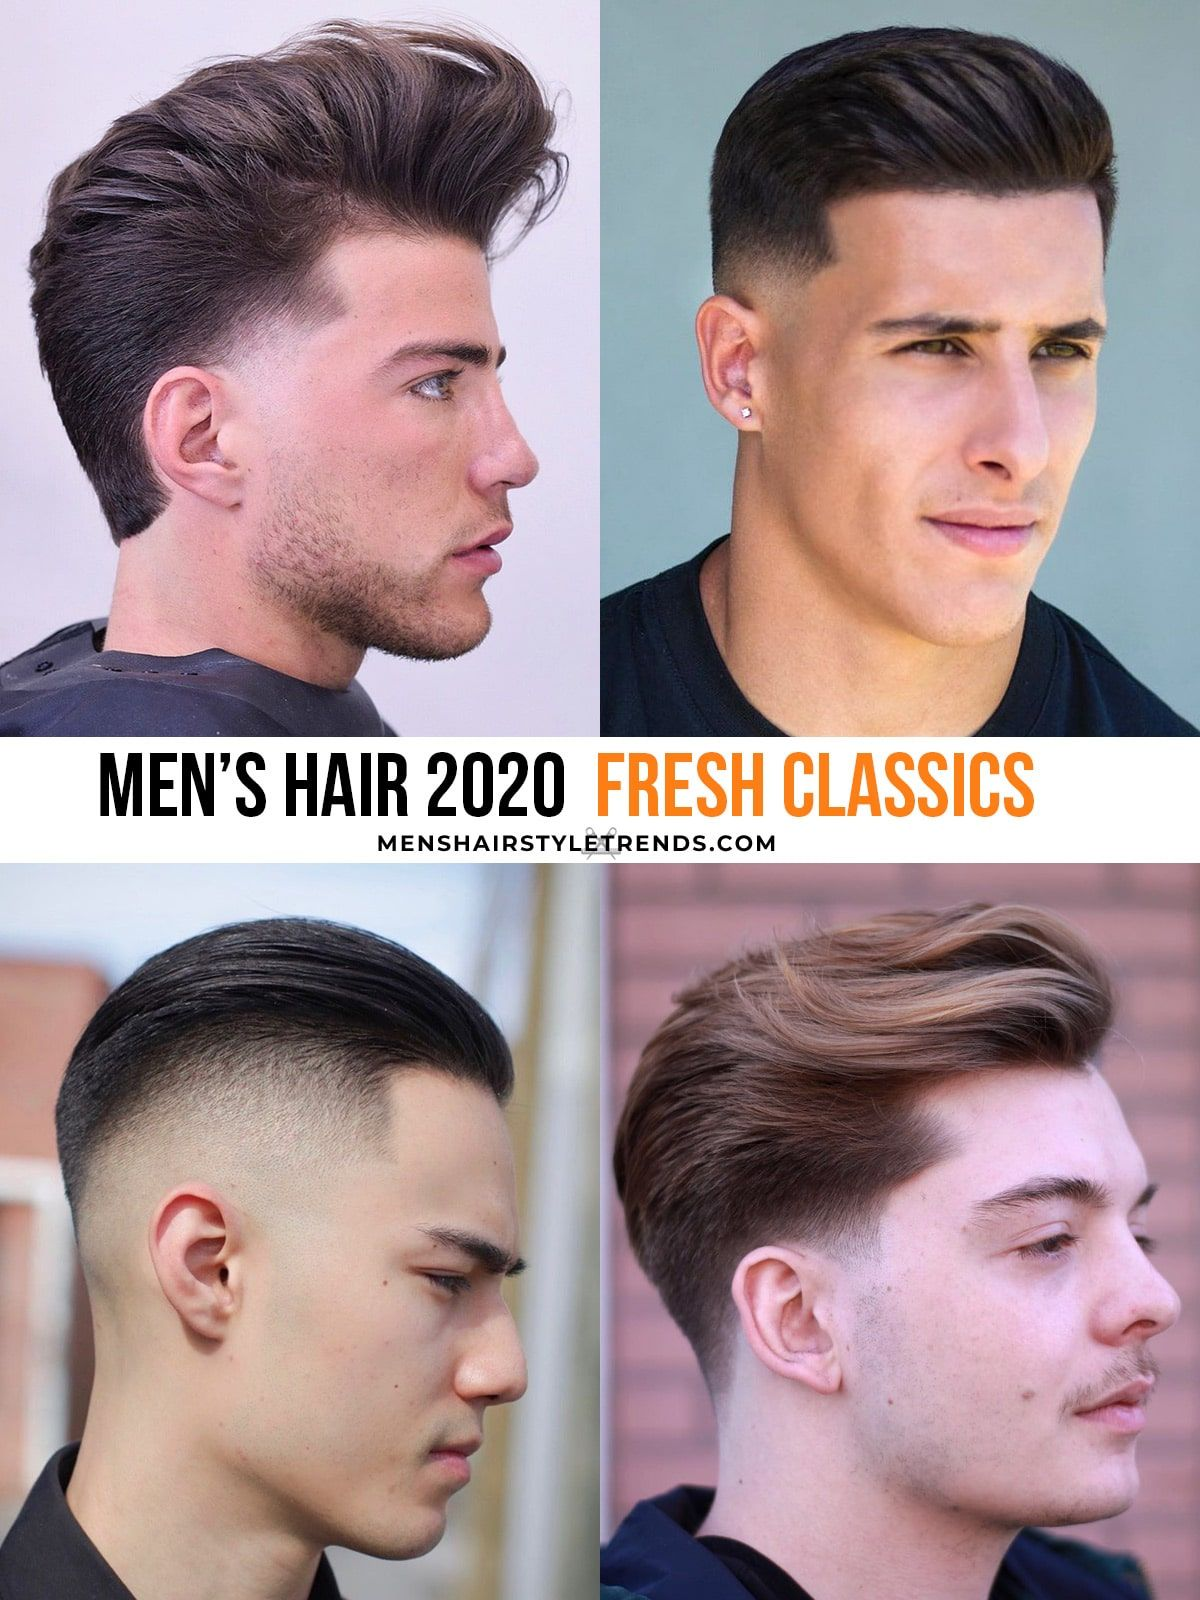 20 Popular Men S Haircuts 2020 Trends Styles In 2020 Popular Mens Haircuts Haircuts For Men Mens Hairstyles